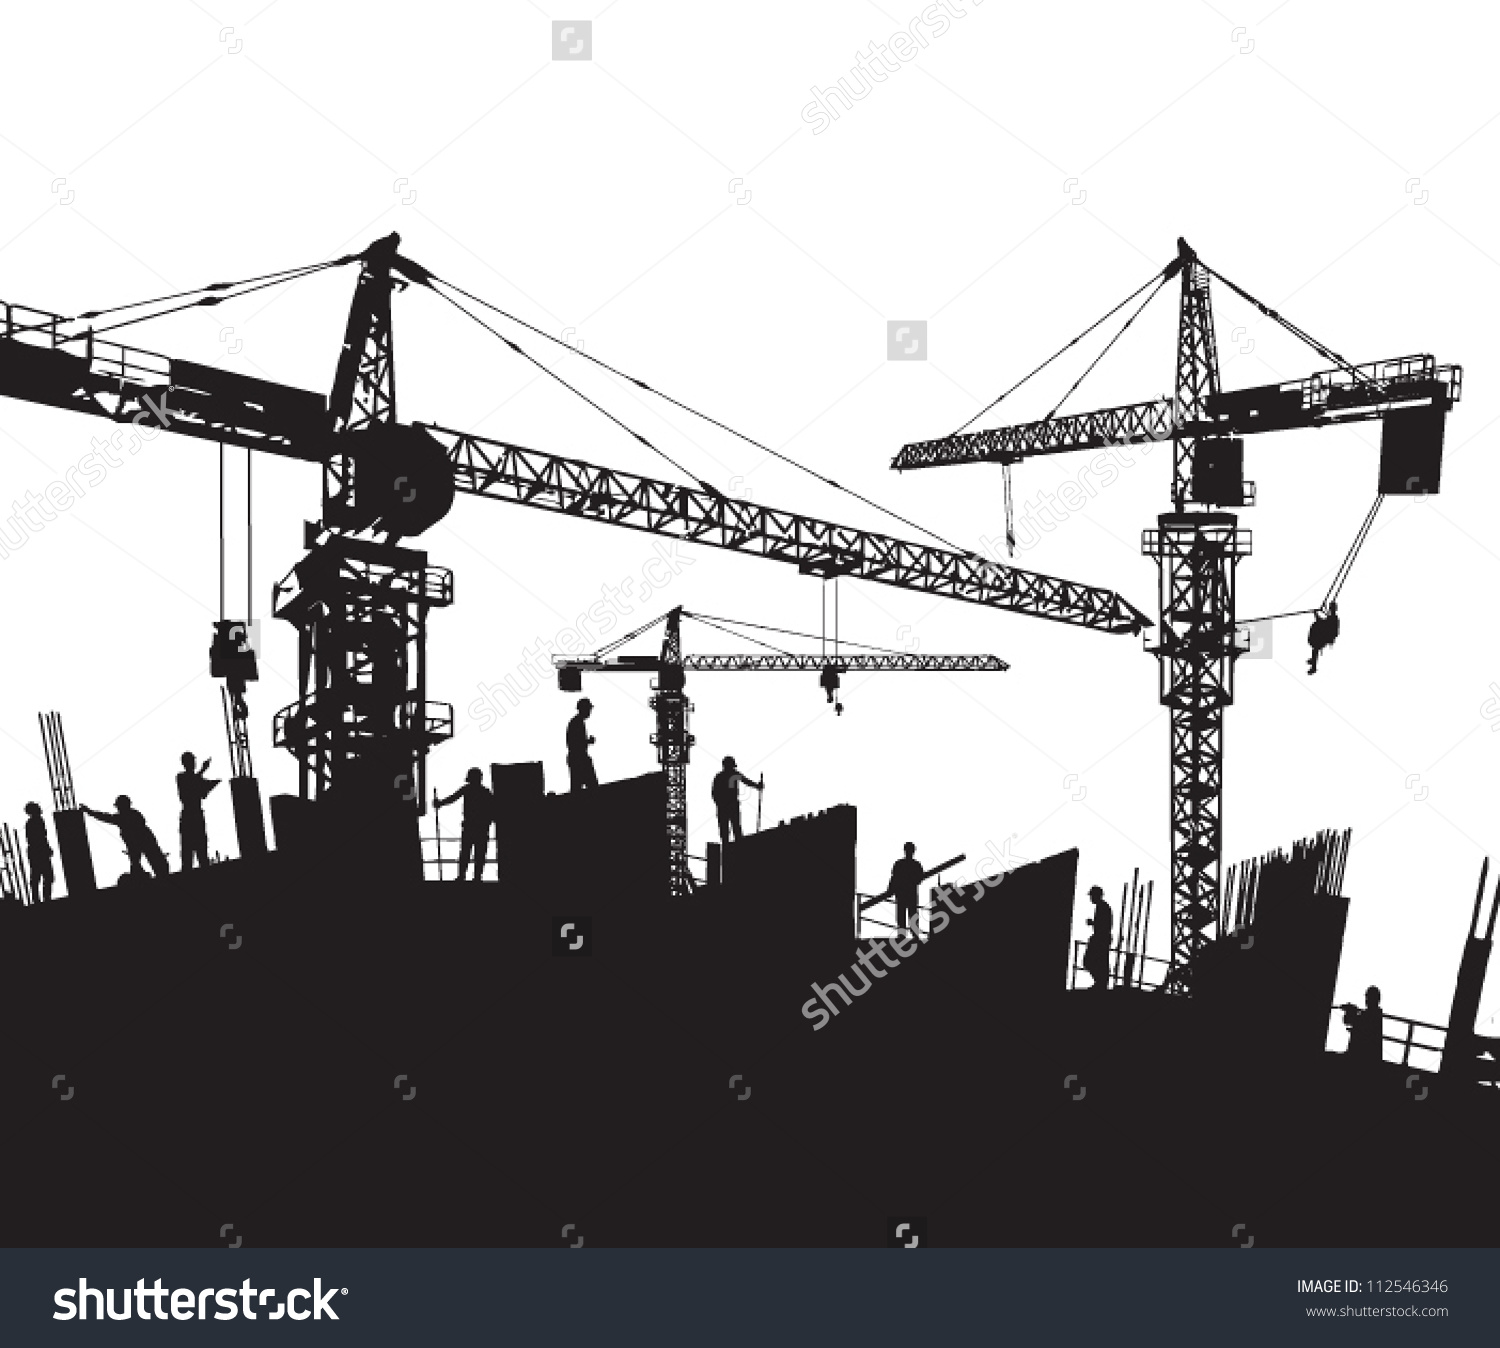 Construction Site Silhouette Cranes Workers Stock Vector 112546346.